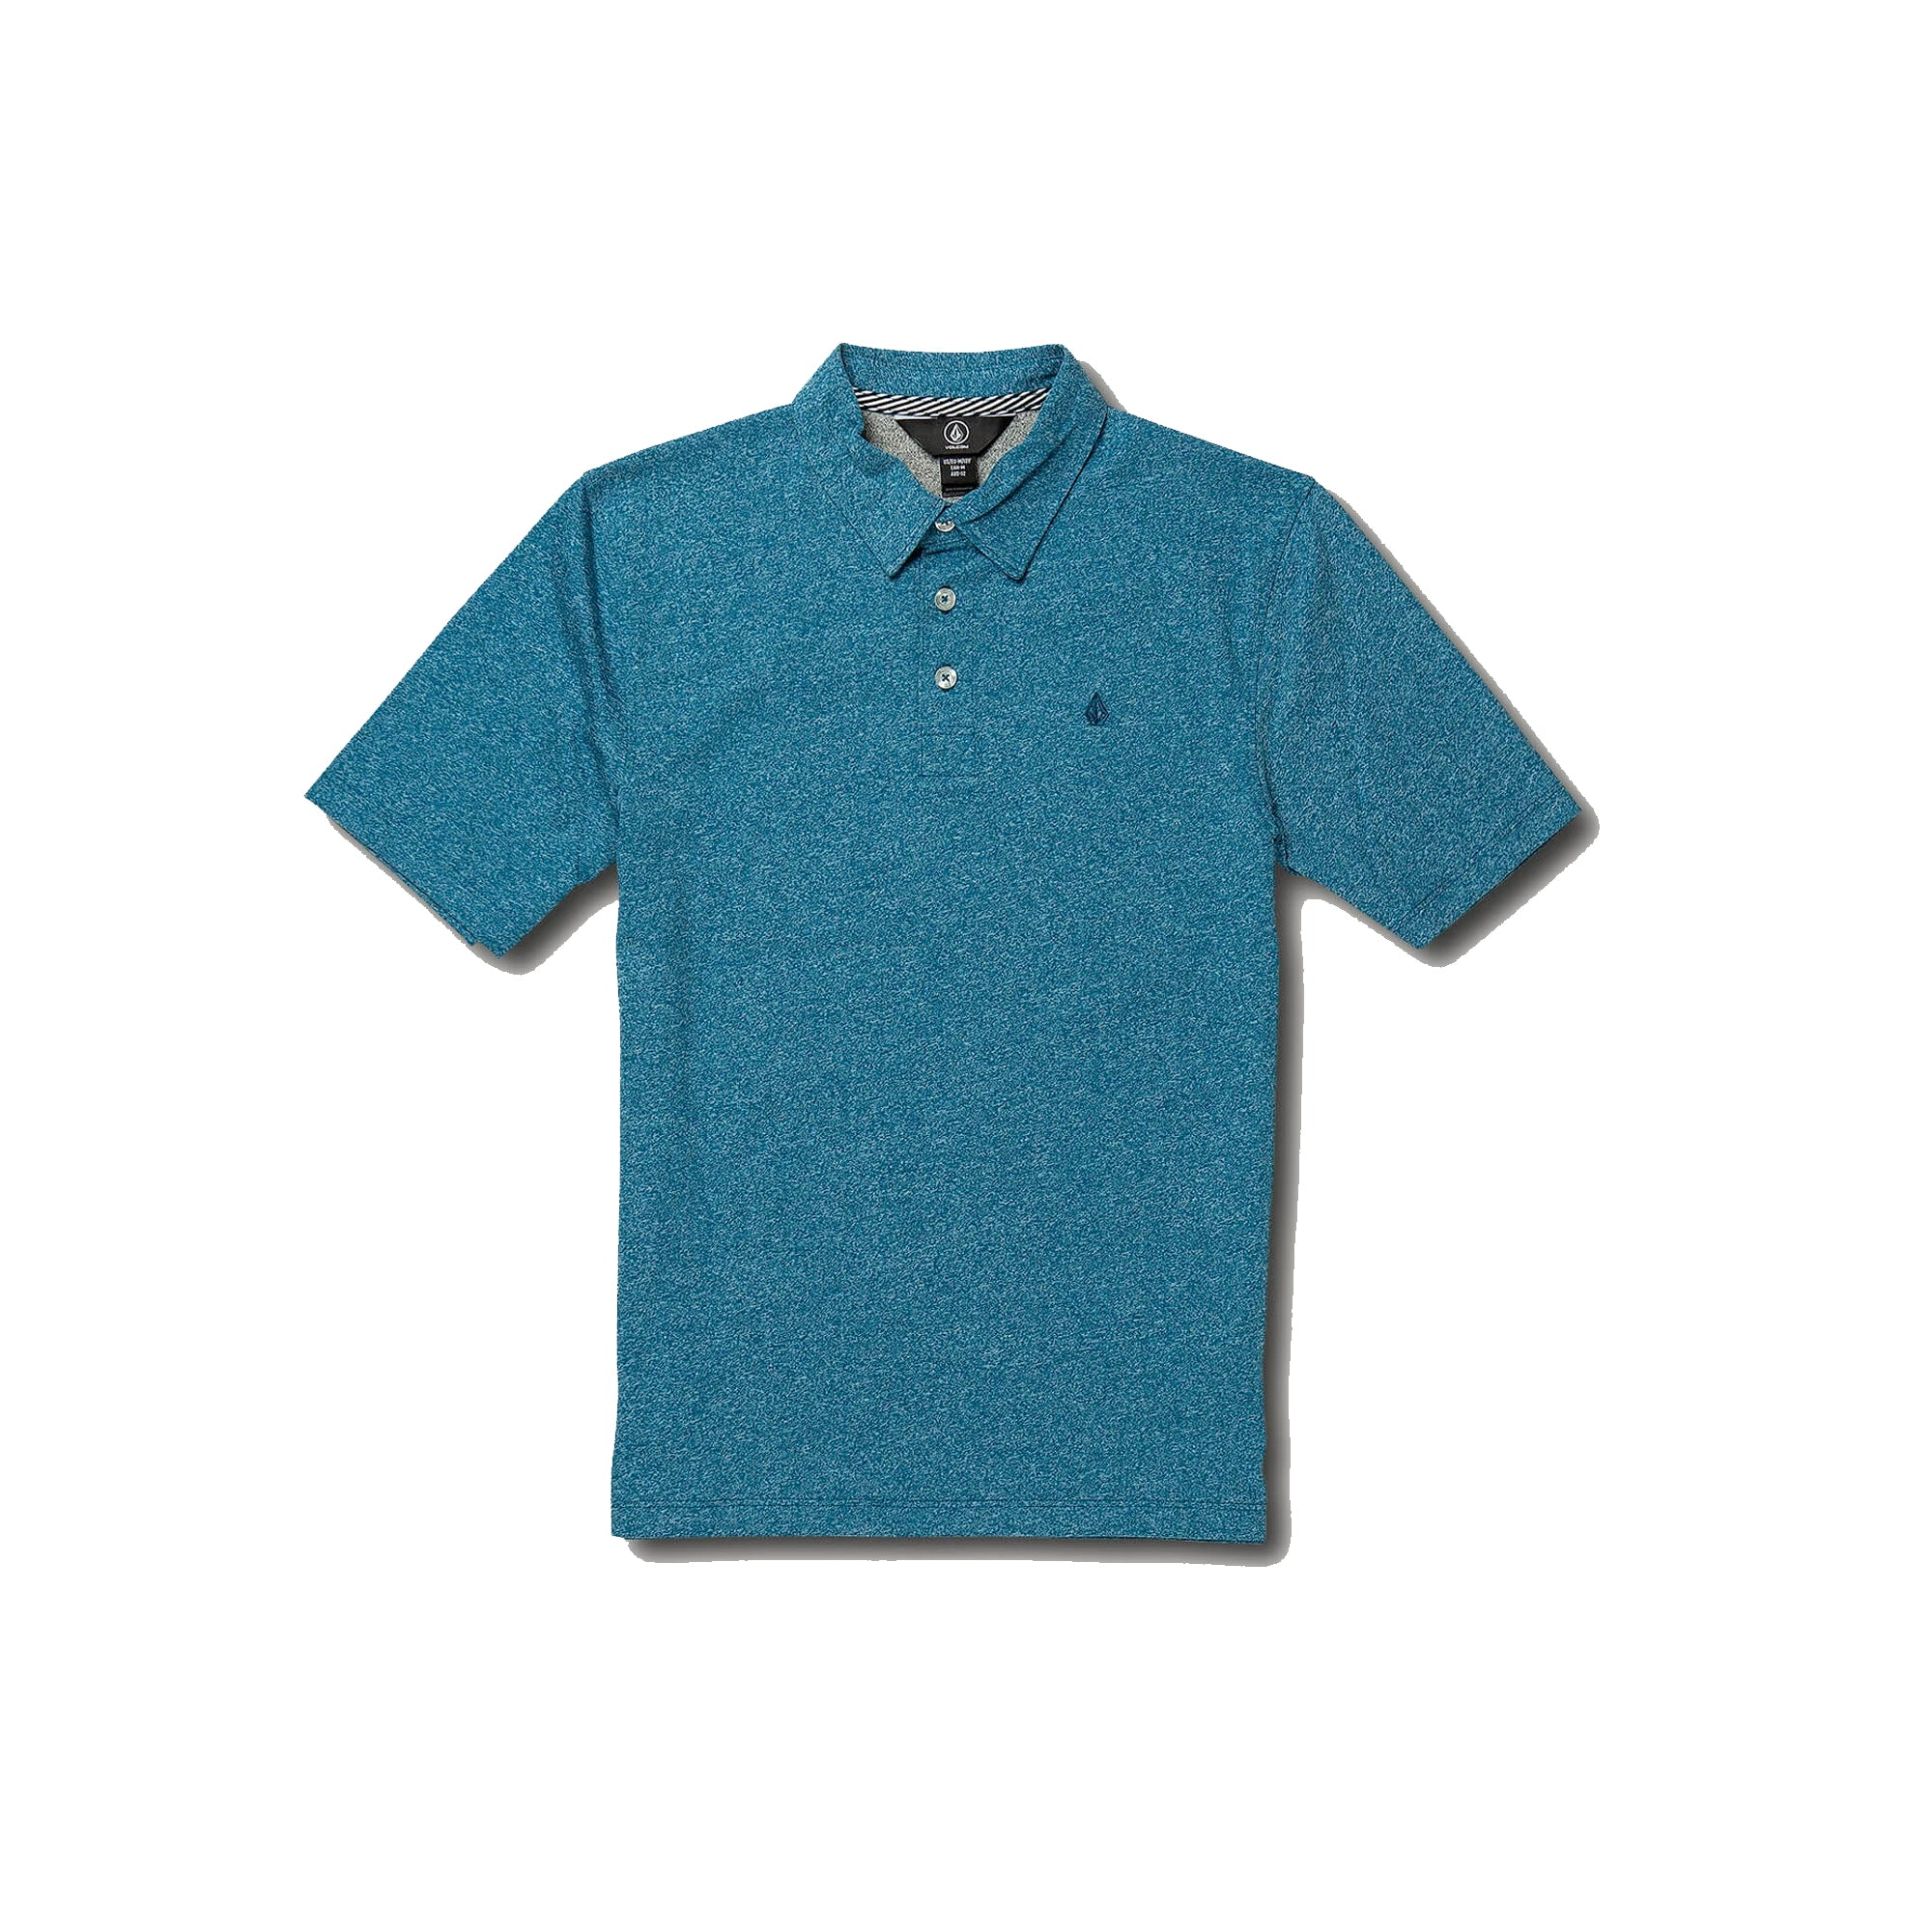 Volcom Wowzer Polo Youth Boy's Dress Shirt